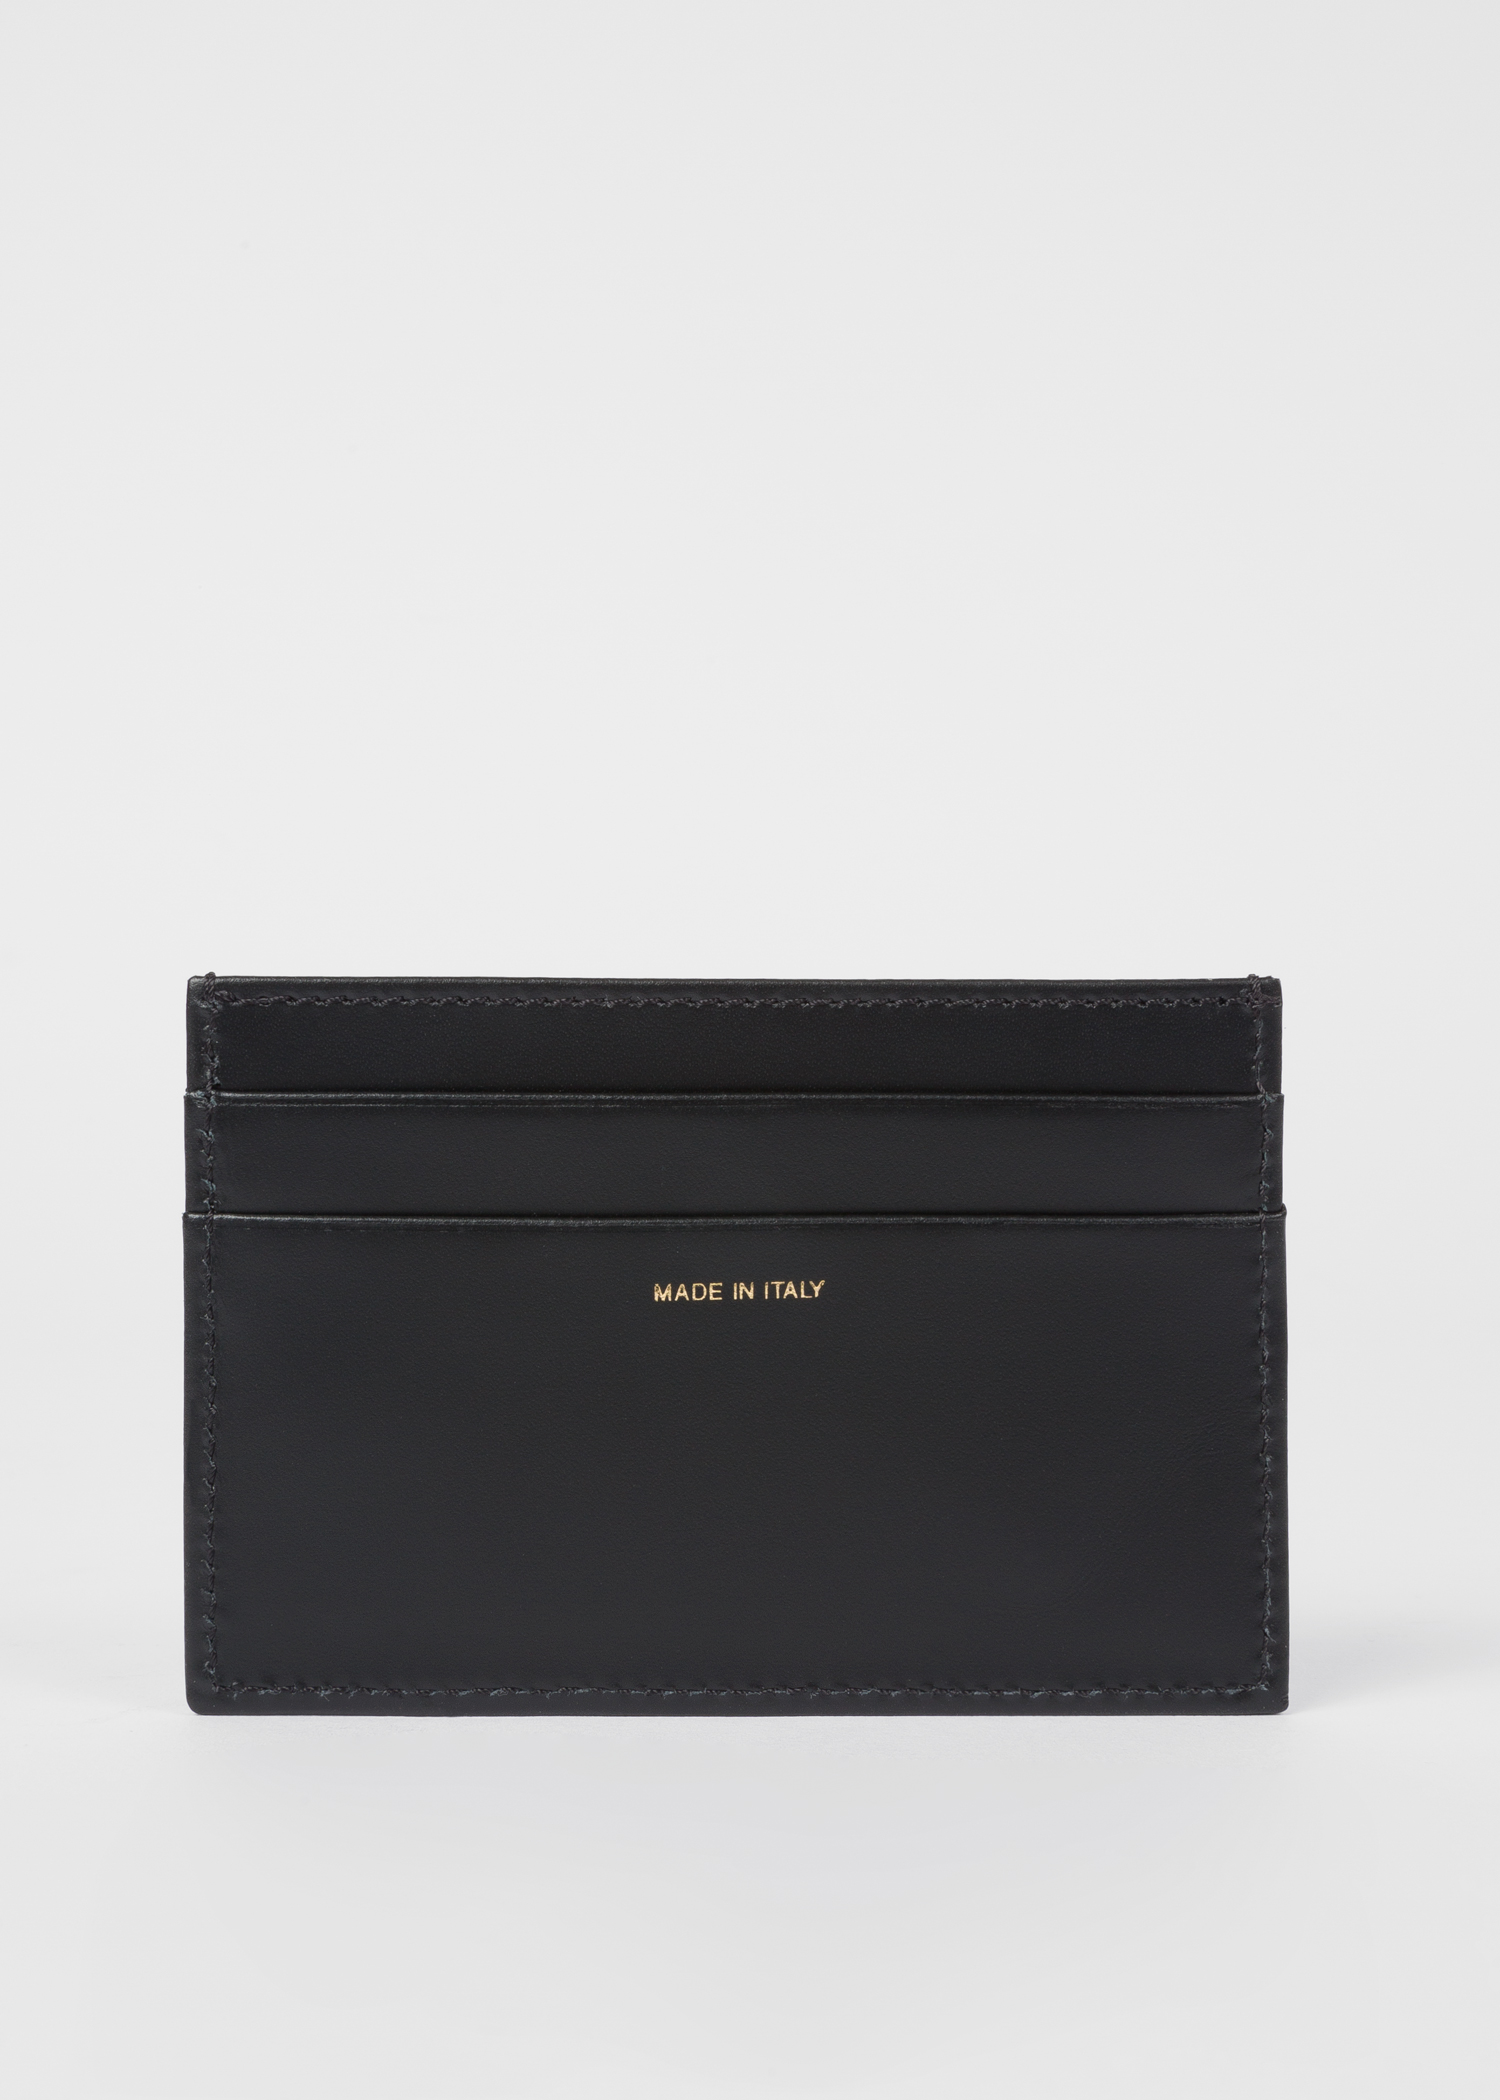 bc4745fb57f3 Men s Black Leather Credit Card Holder With Signature Stripe Trim by Paul  Smith